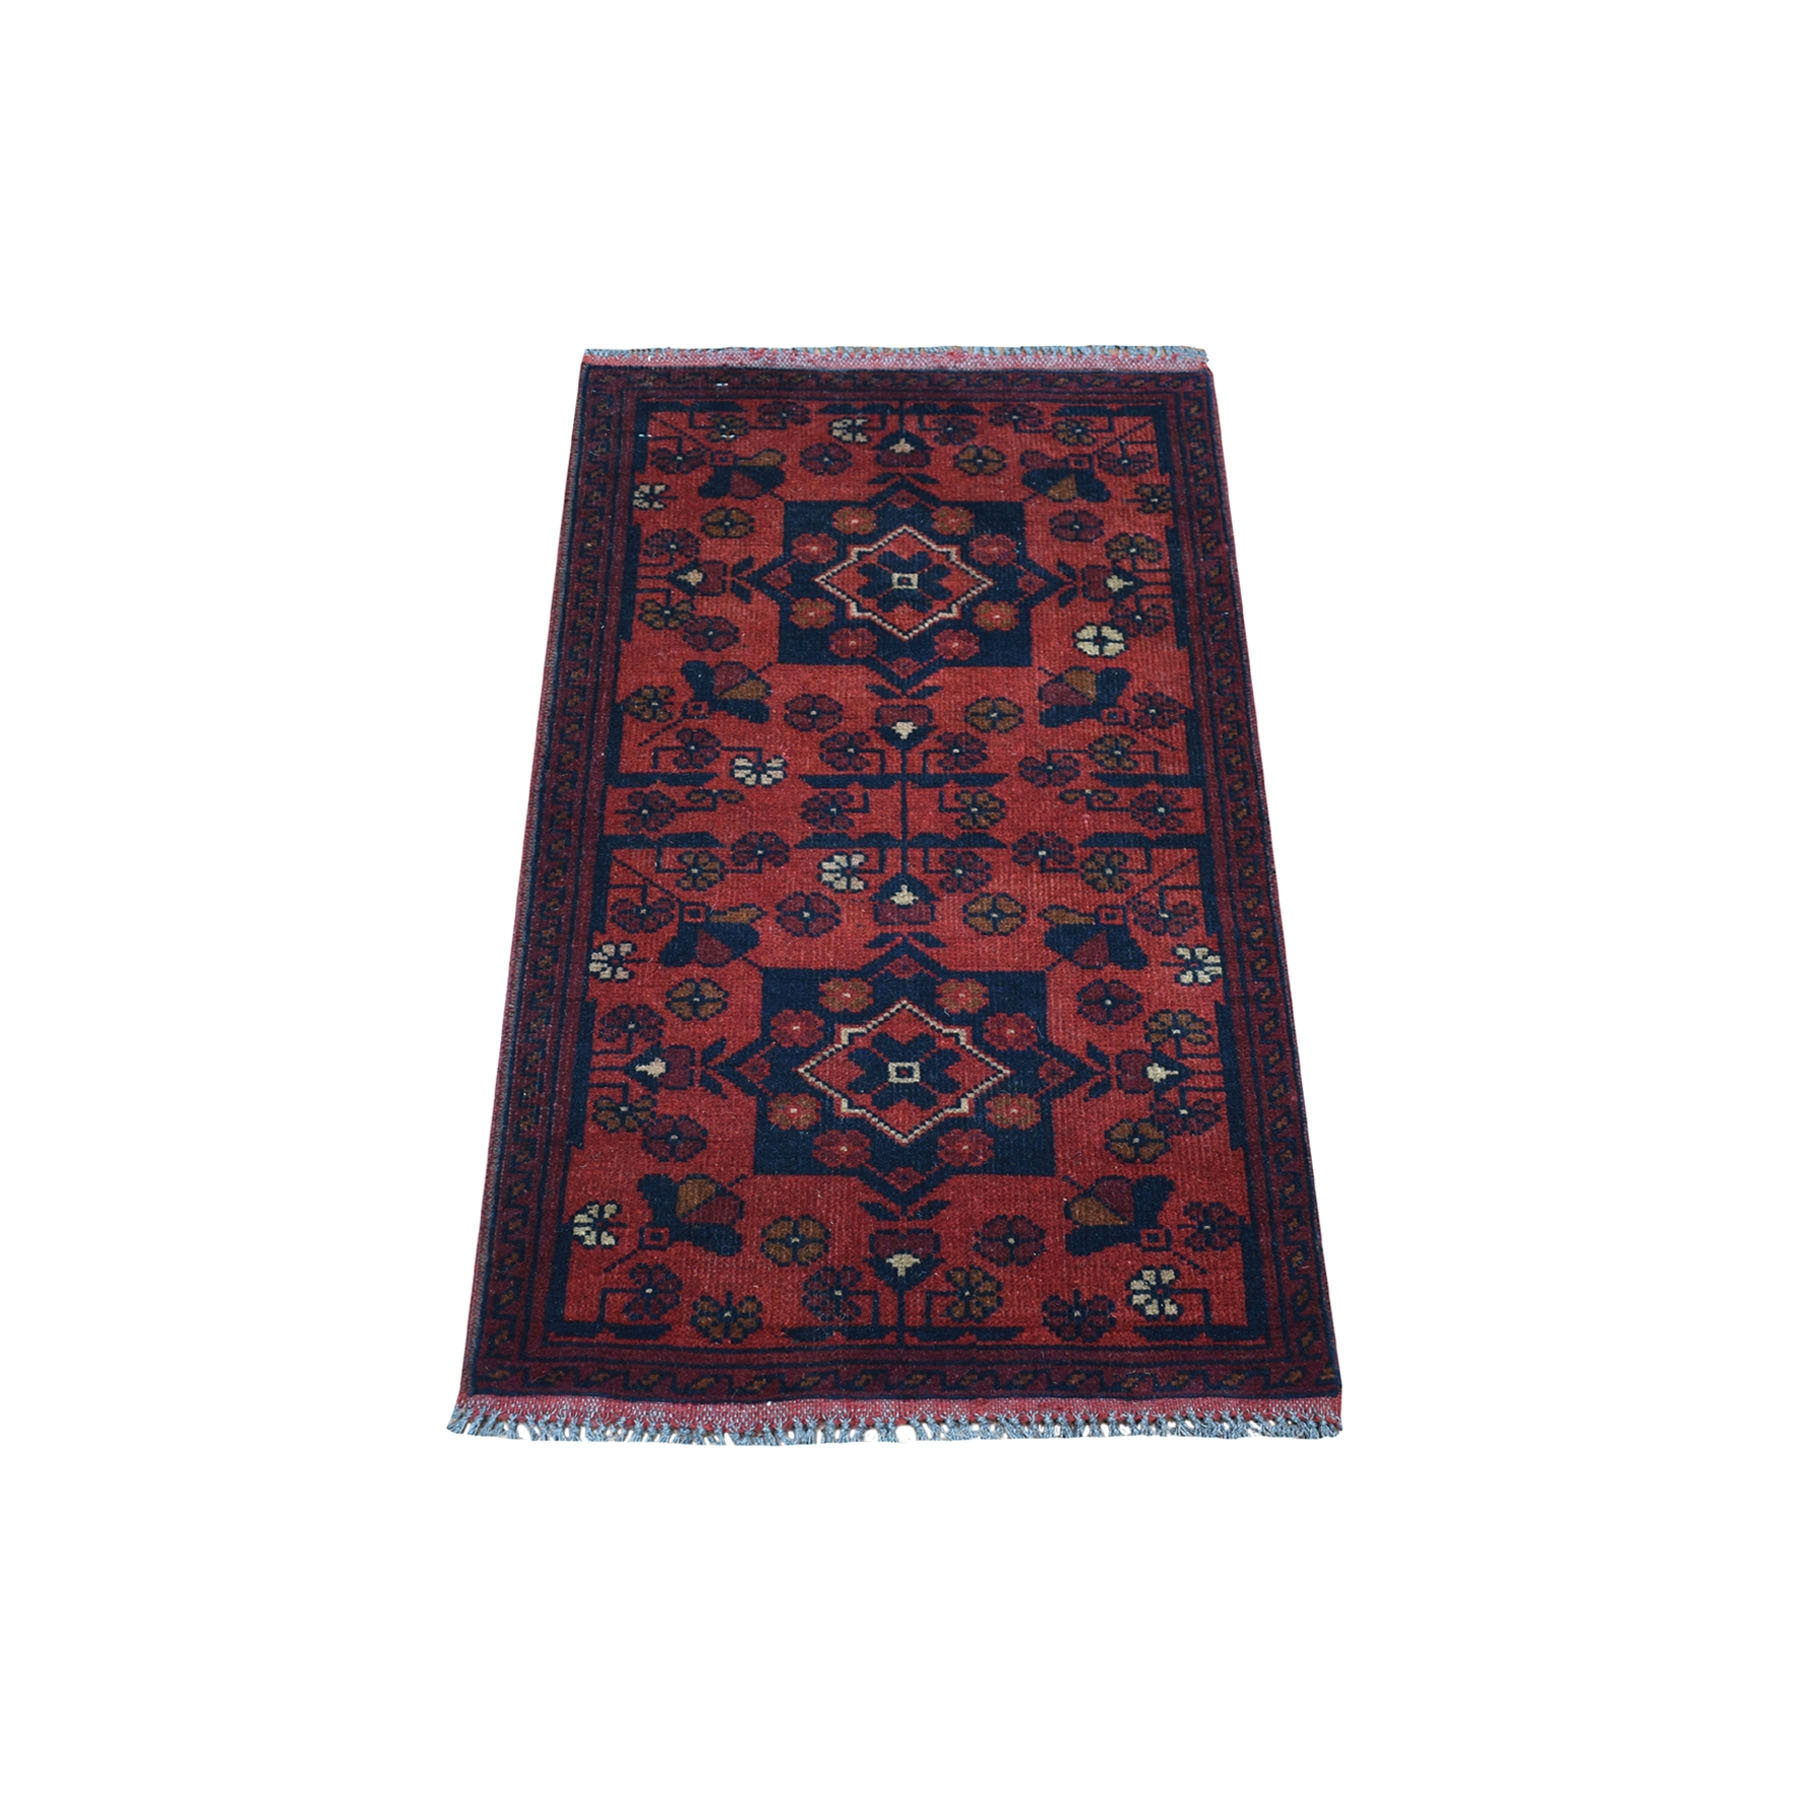 "1'9""X3'2"" Deep And Saturated Red Geometric Design Afghan Andkhoy Pure Wool Hand-Knotted Oriental Rug moaec900"